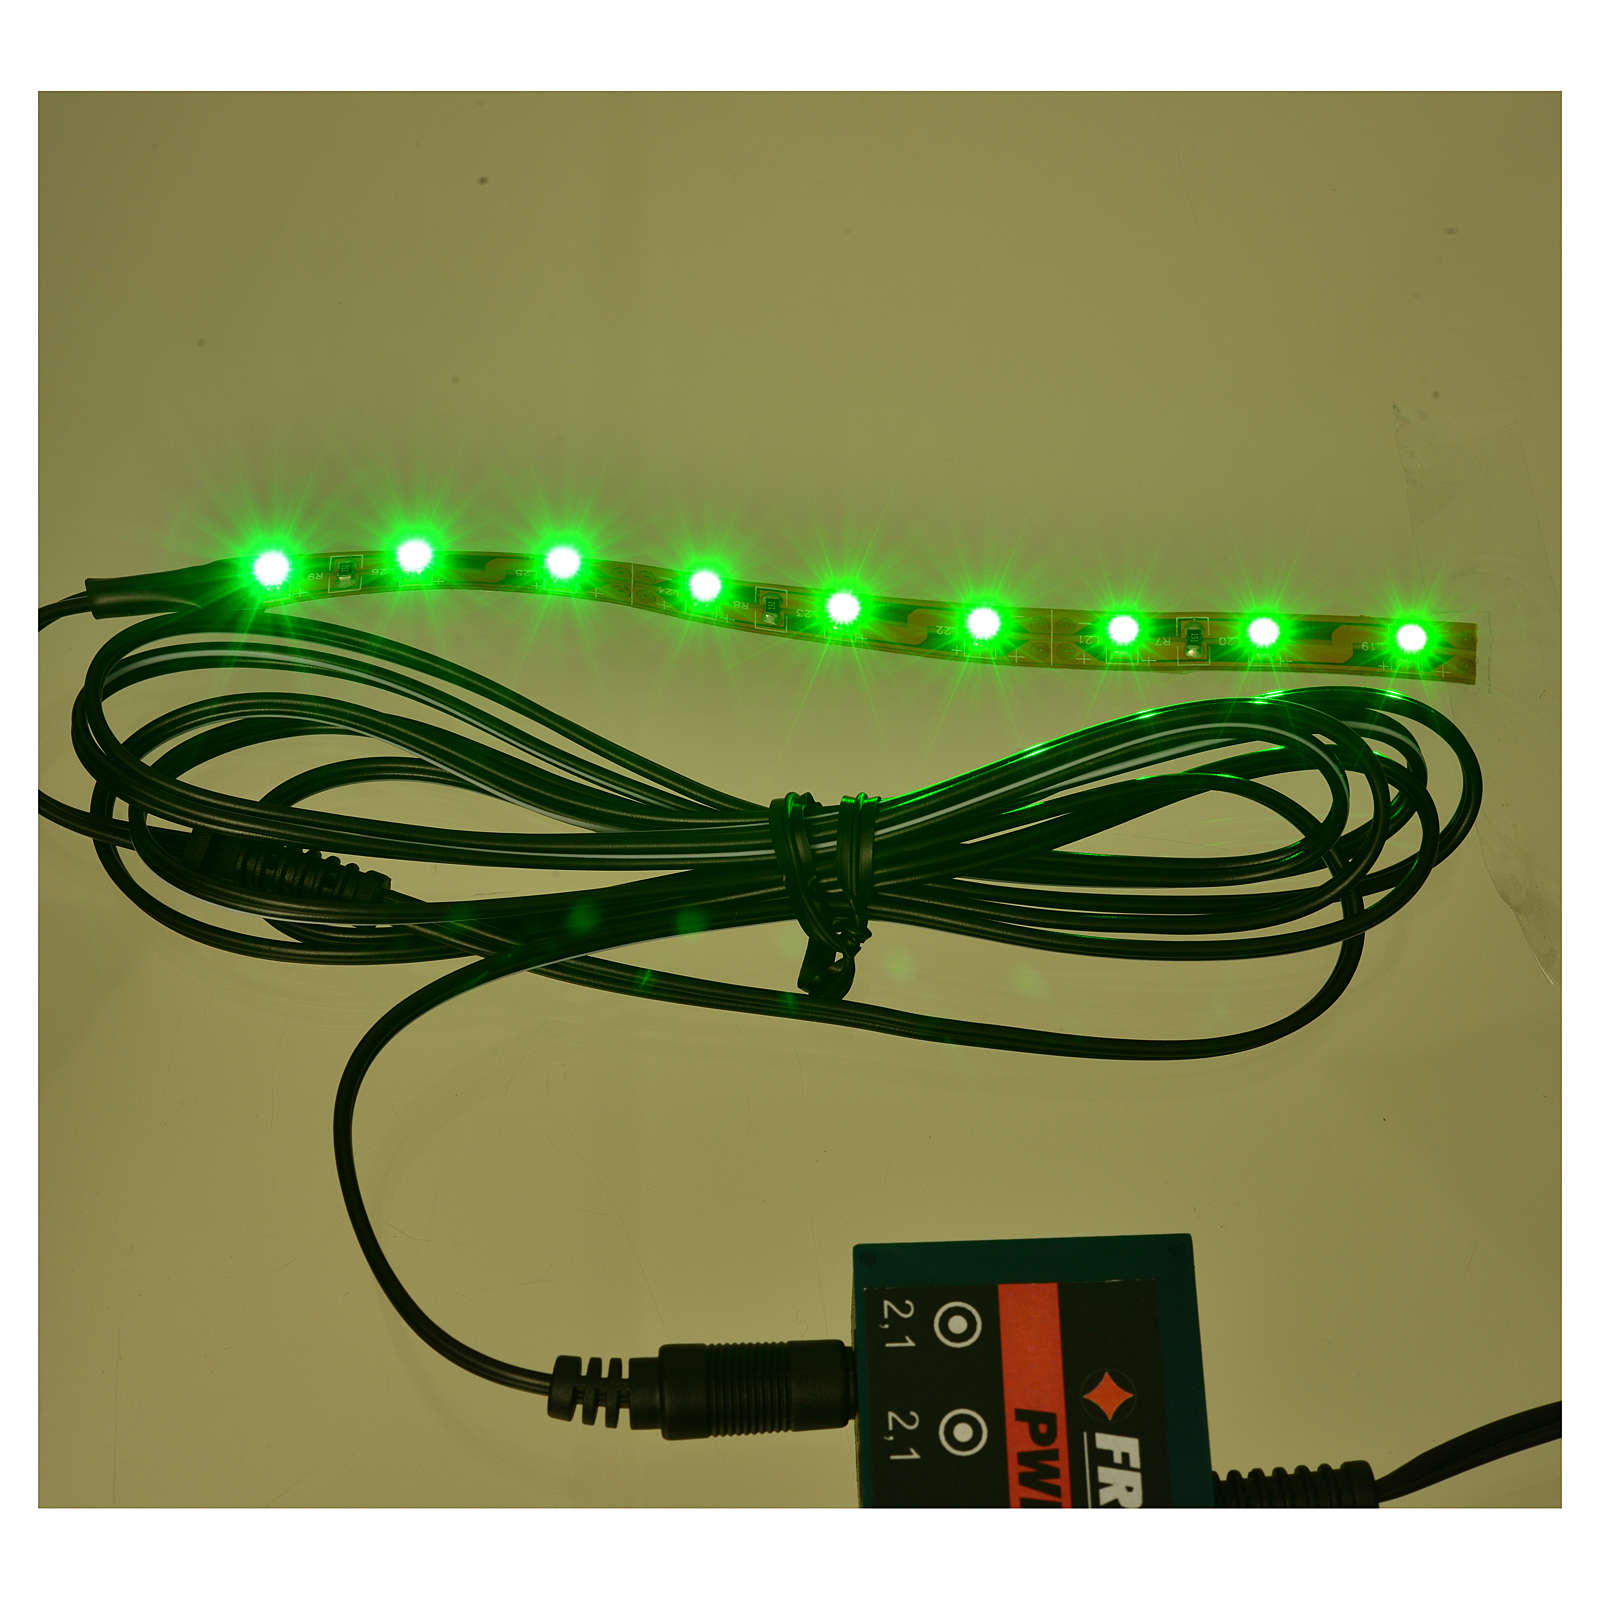 Led strisce 9 led cm 0,8x12 cm verde per Frisalight 4